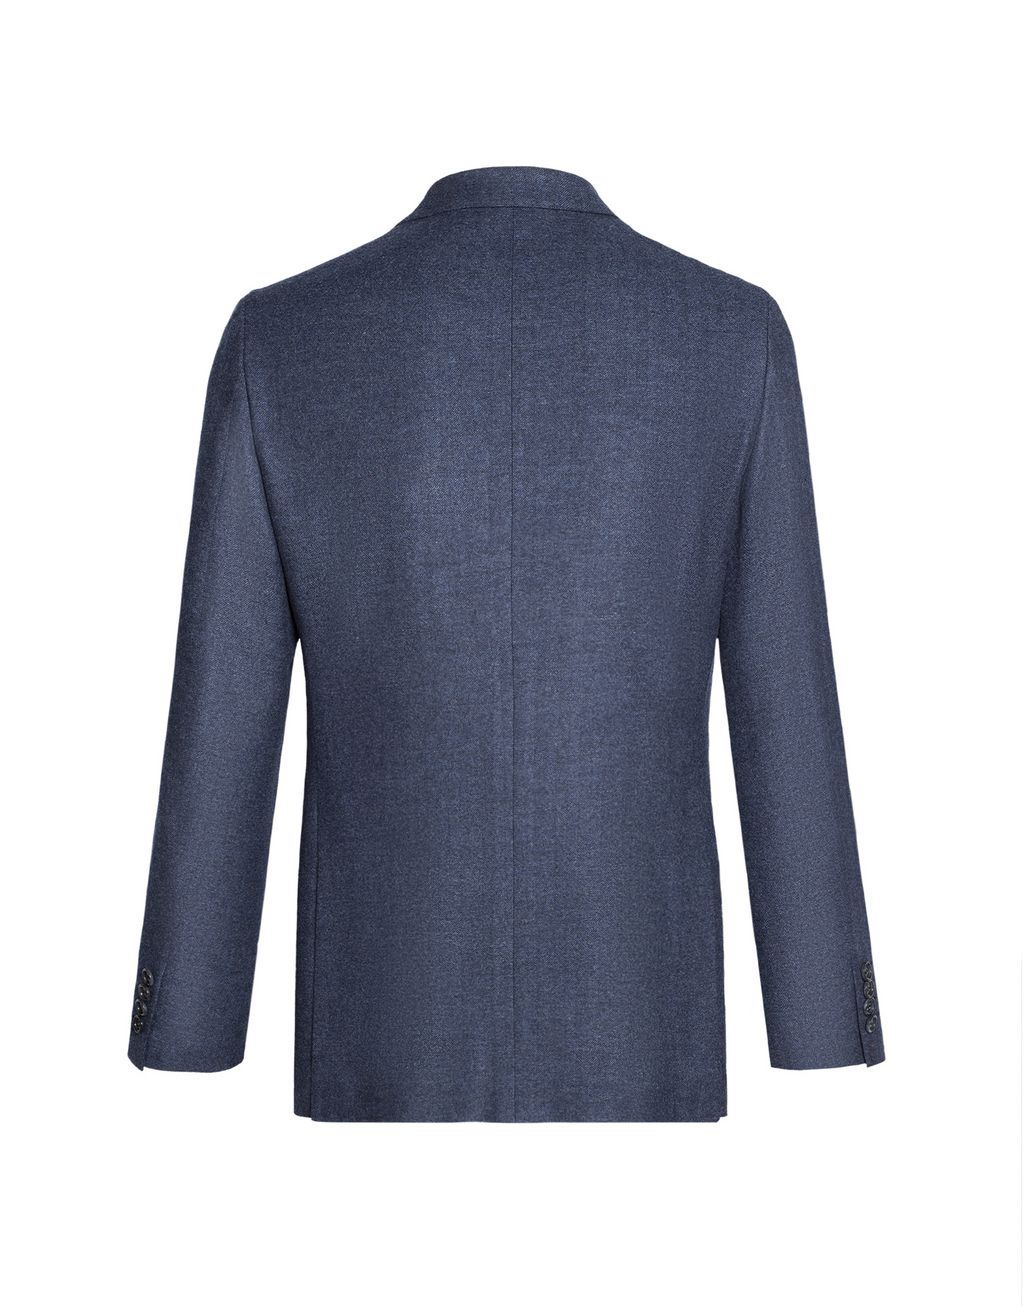 BRIONI Denim Blue Herringbone Plume Jacket Jackets U r